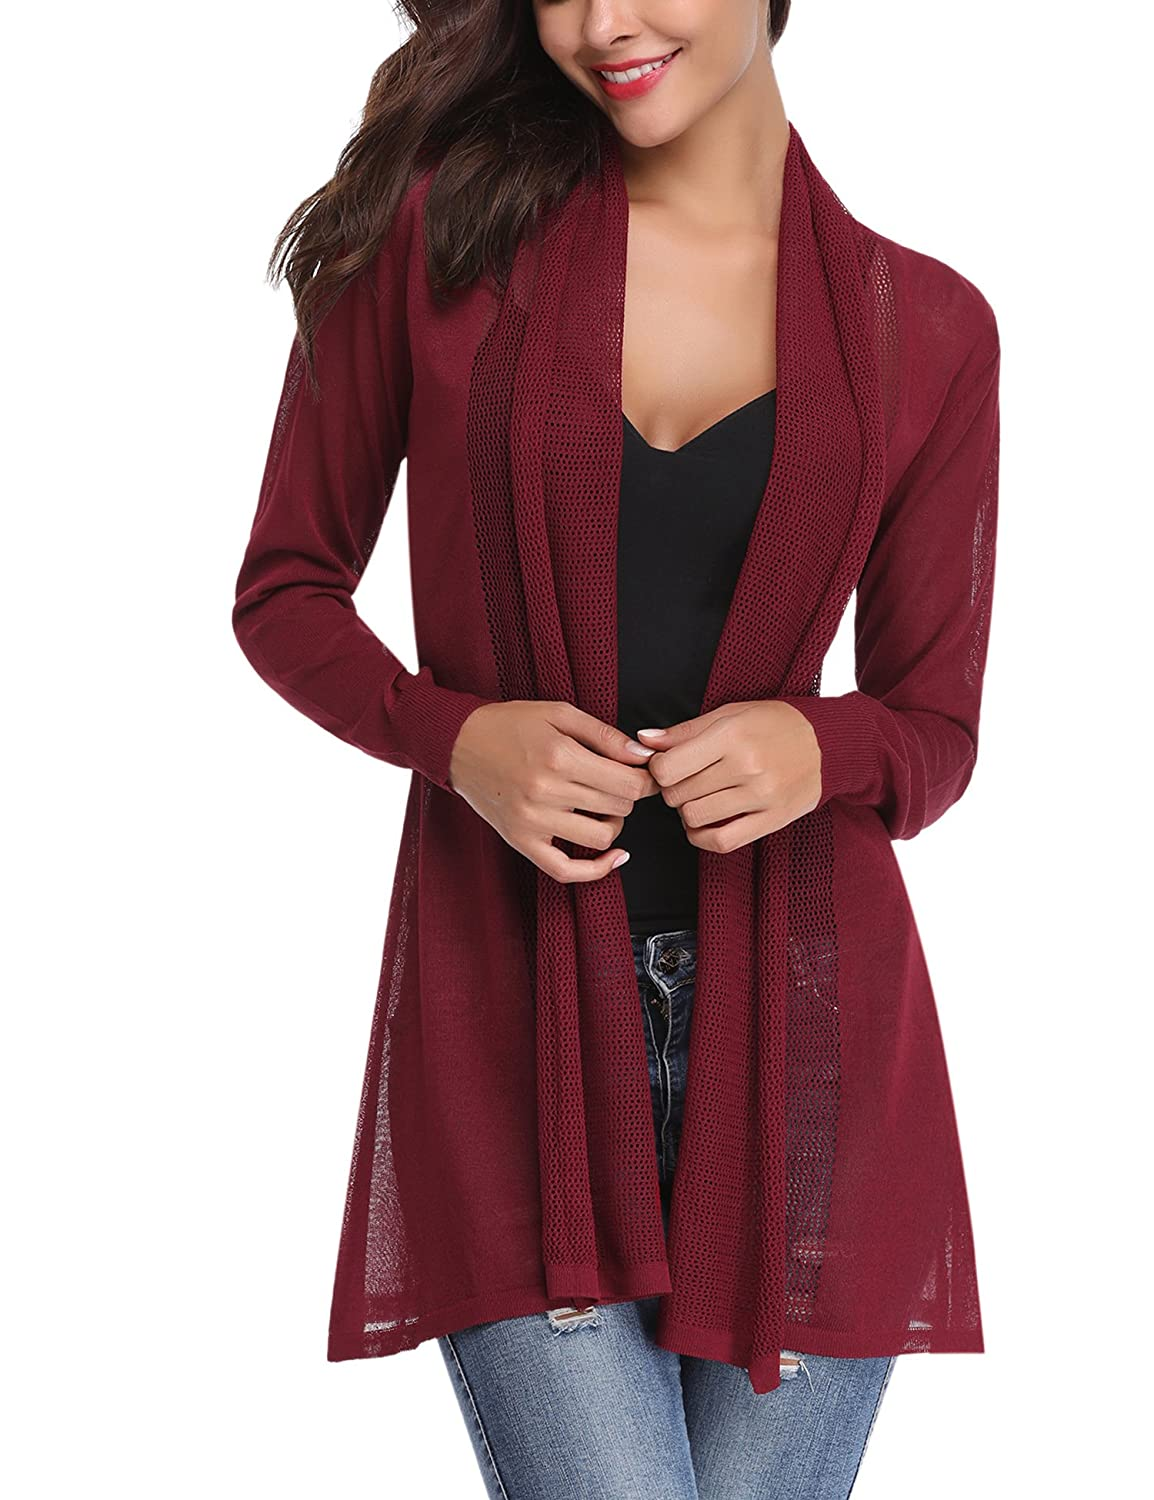 Abollria Womens Casual Long Sleeve Open Front Cardigan Sweater amn00077